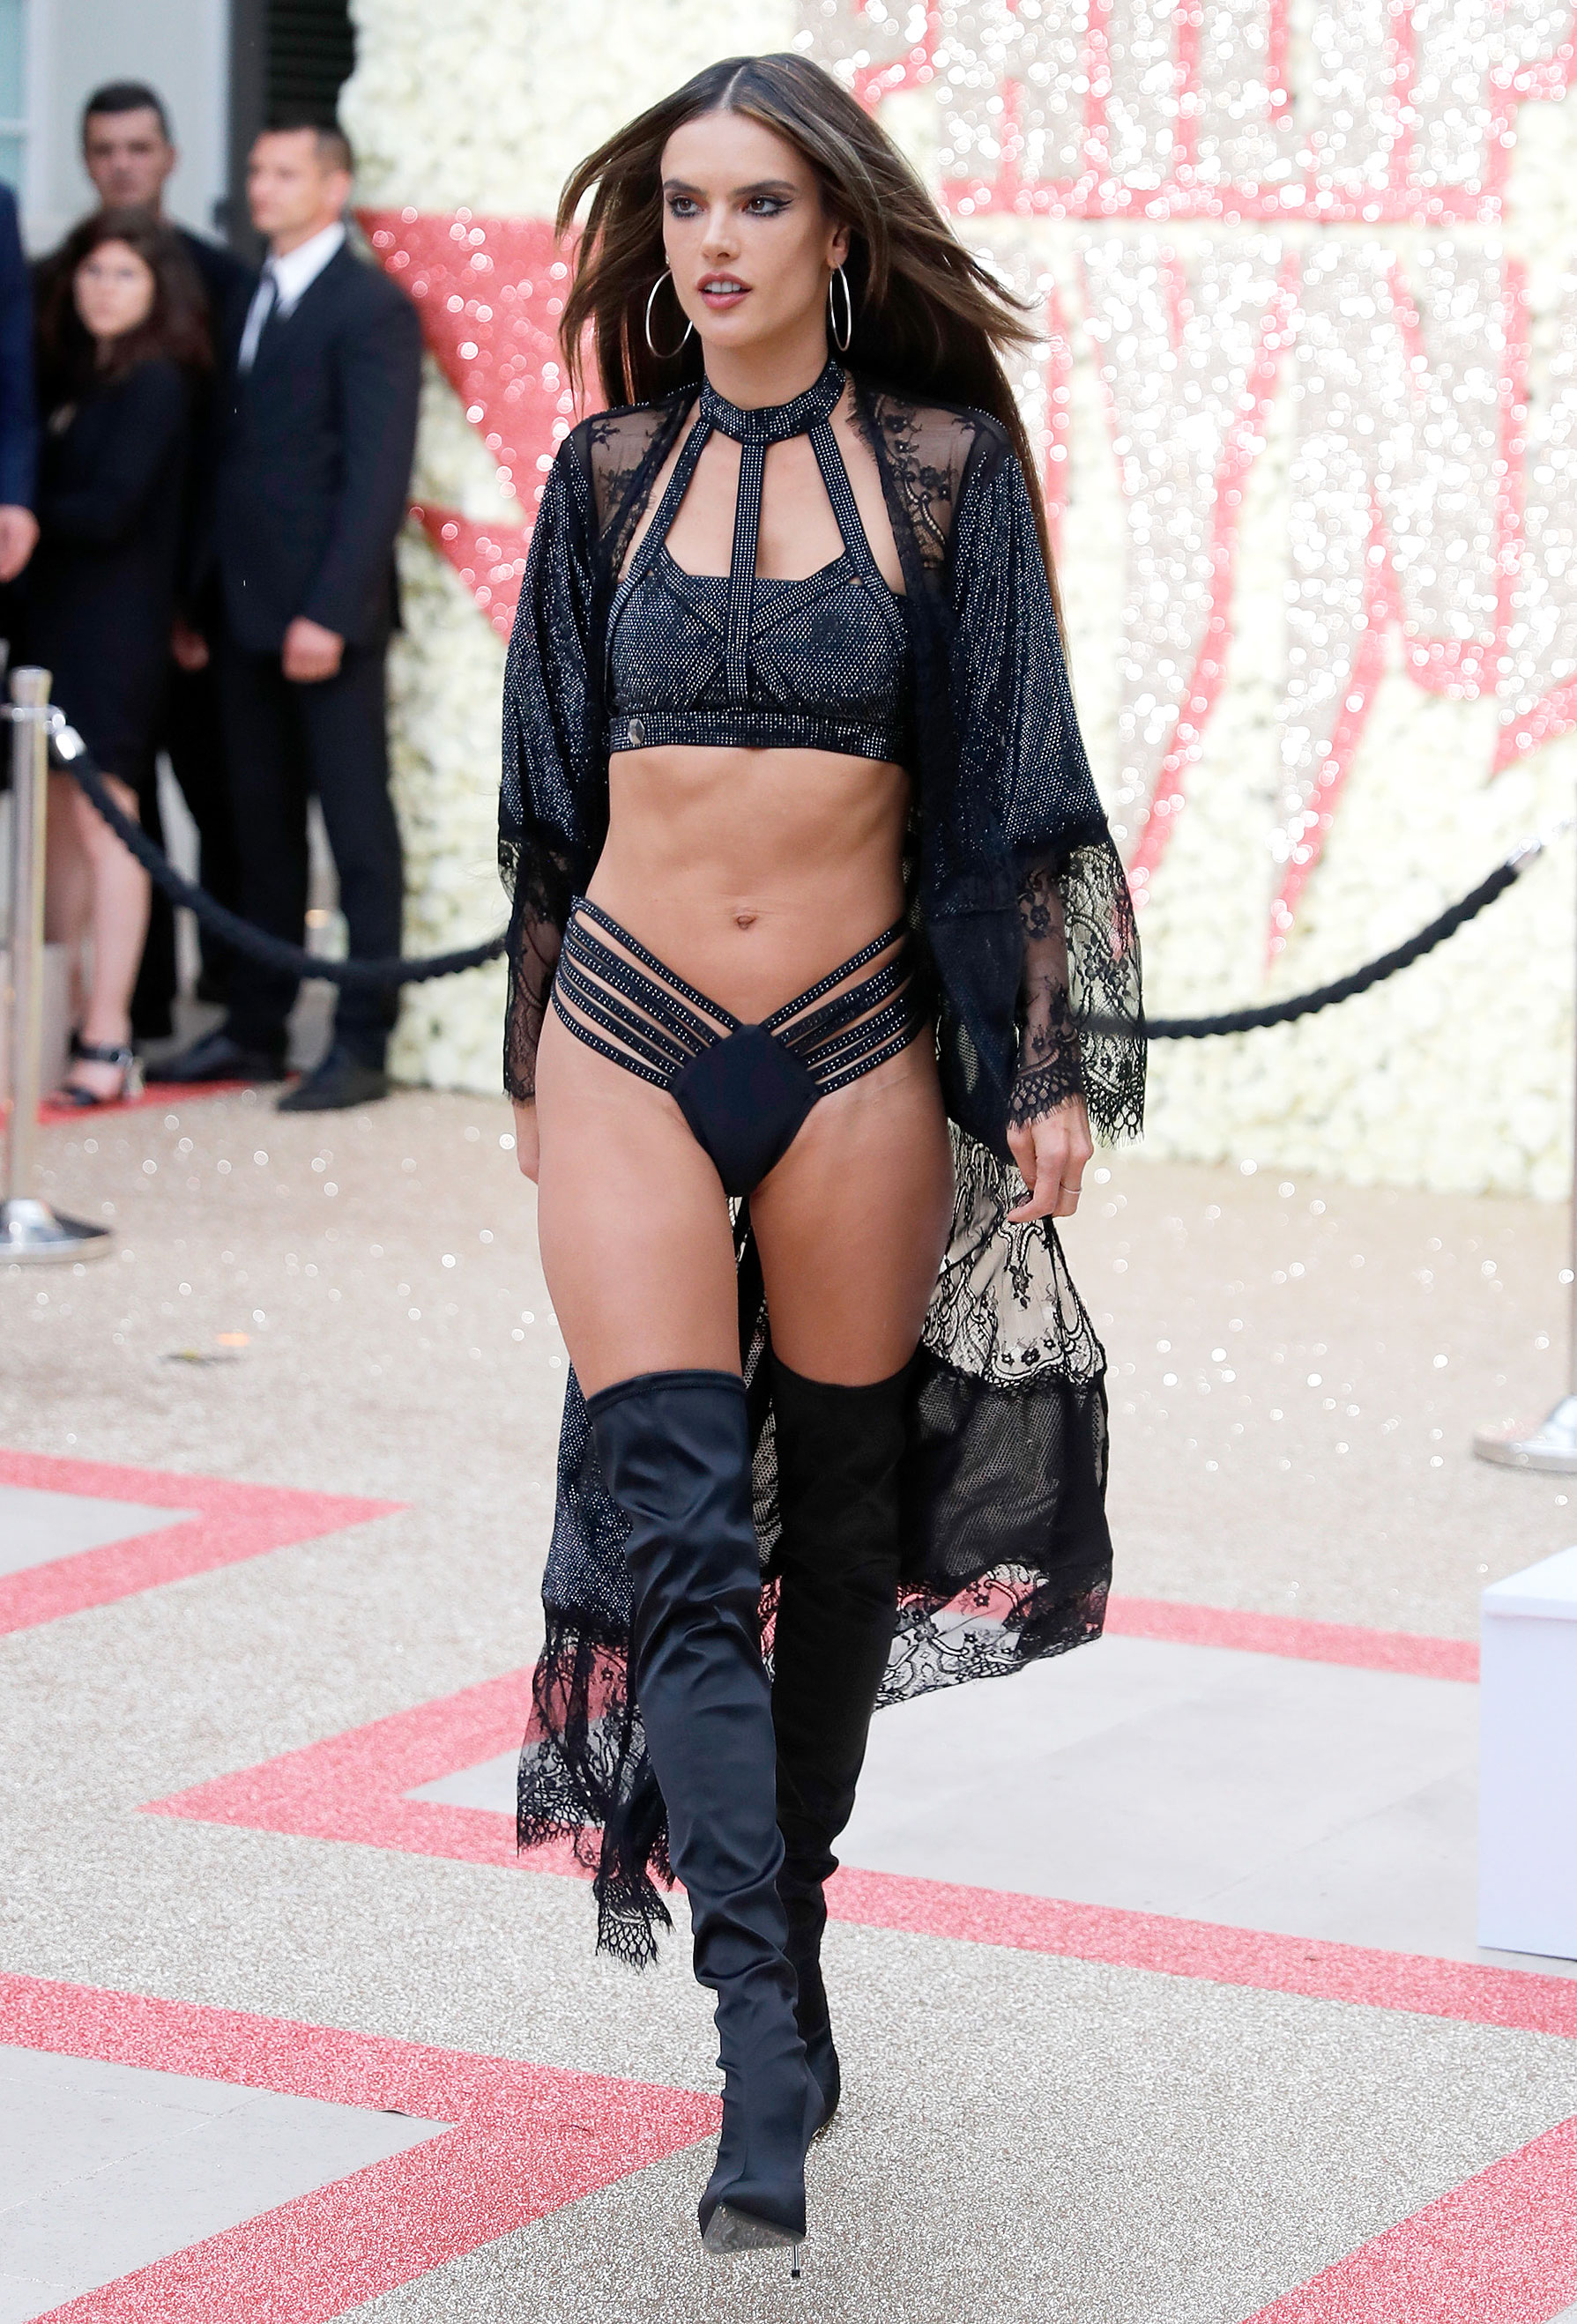 Alessandra Ambrosio - Taking the nearly naked trend to new heights, the model showed off her fit physique on the Philipp Plein Resort 2019 runway on Wednesday, May 16.